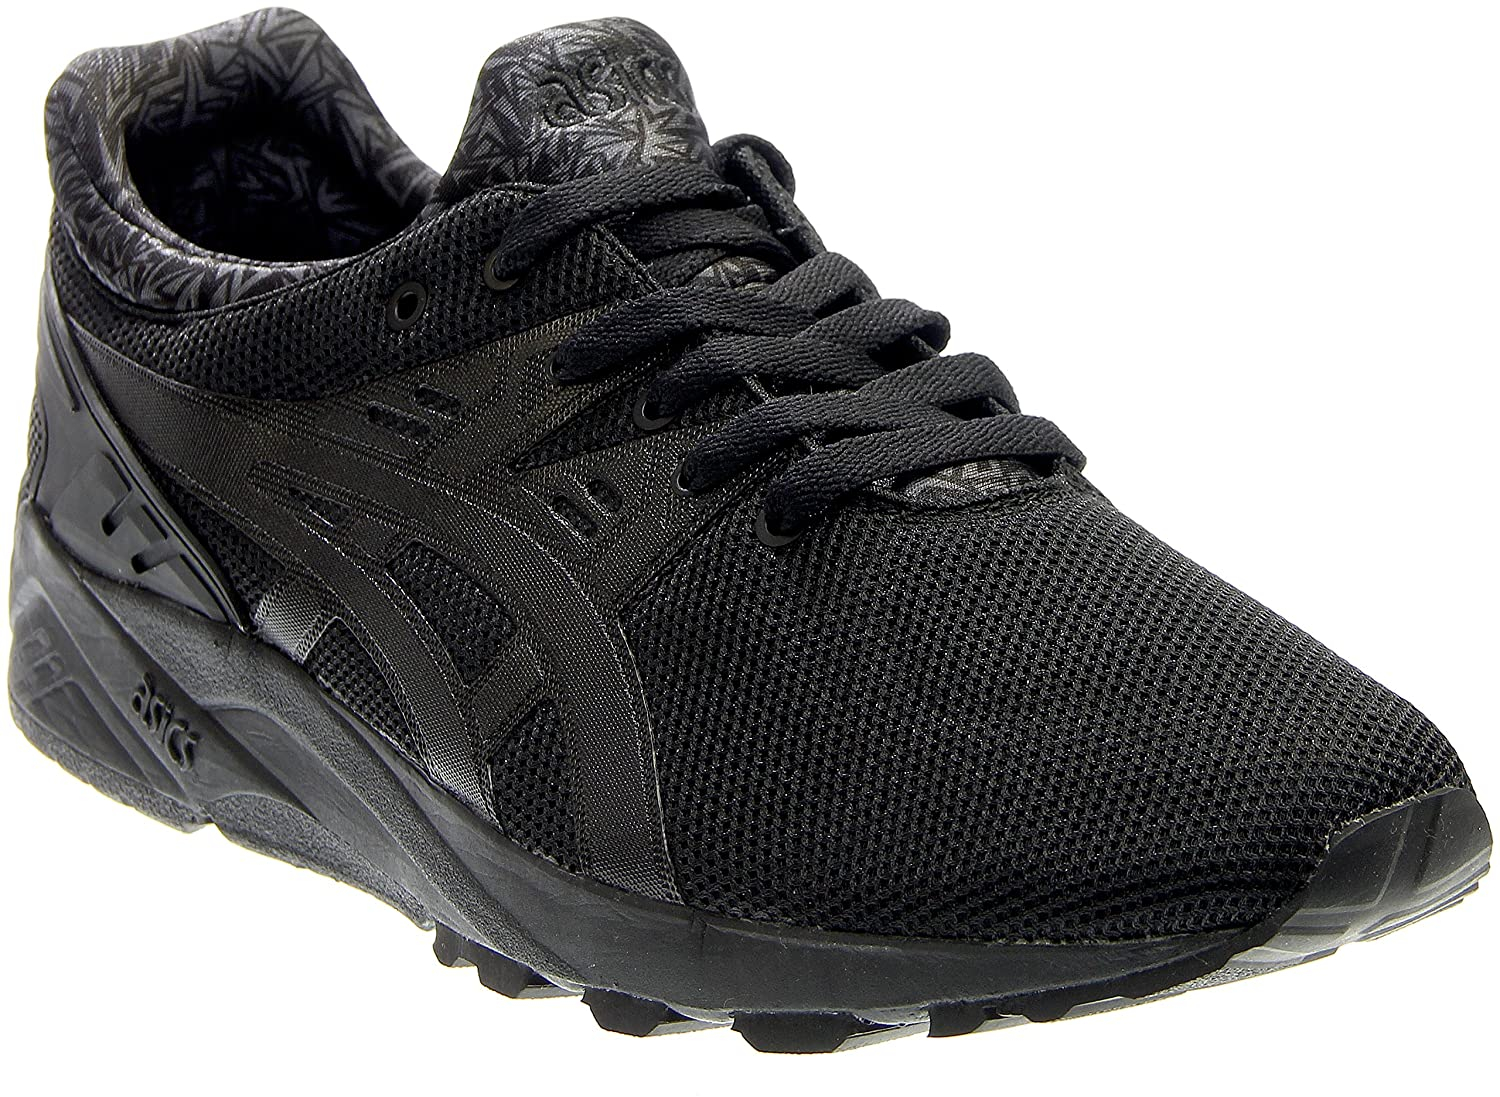 33d37039498d 30%OFF Onitsuka Tiger by Asics Mens Gel-Kayano Trainer Evo ...